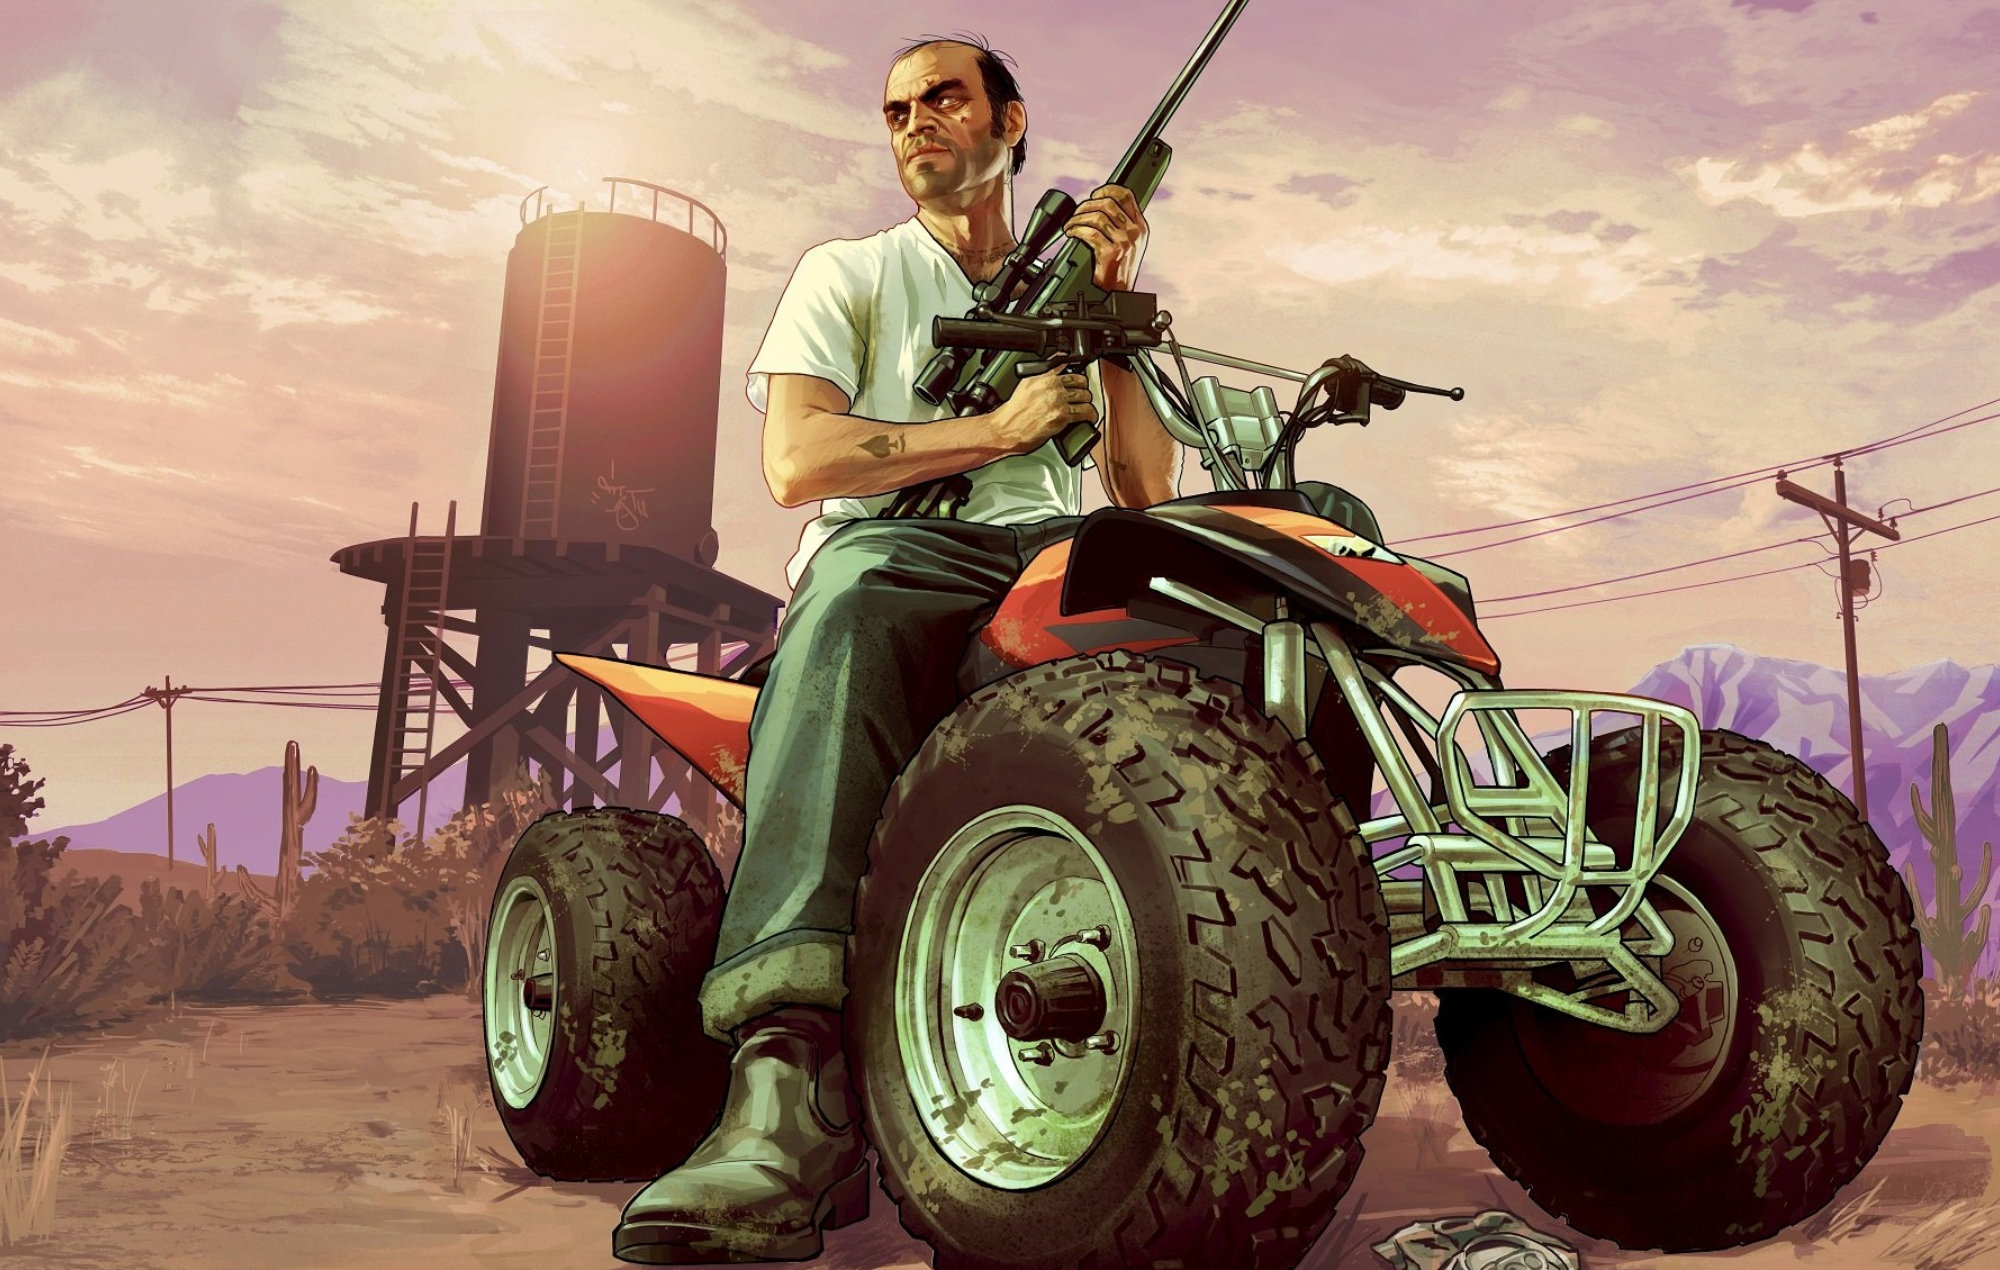 Take-Two Interactive plans to release 93 games over the next five years - NME